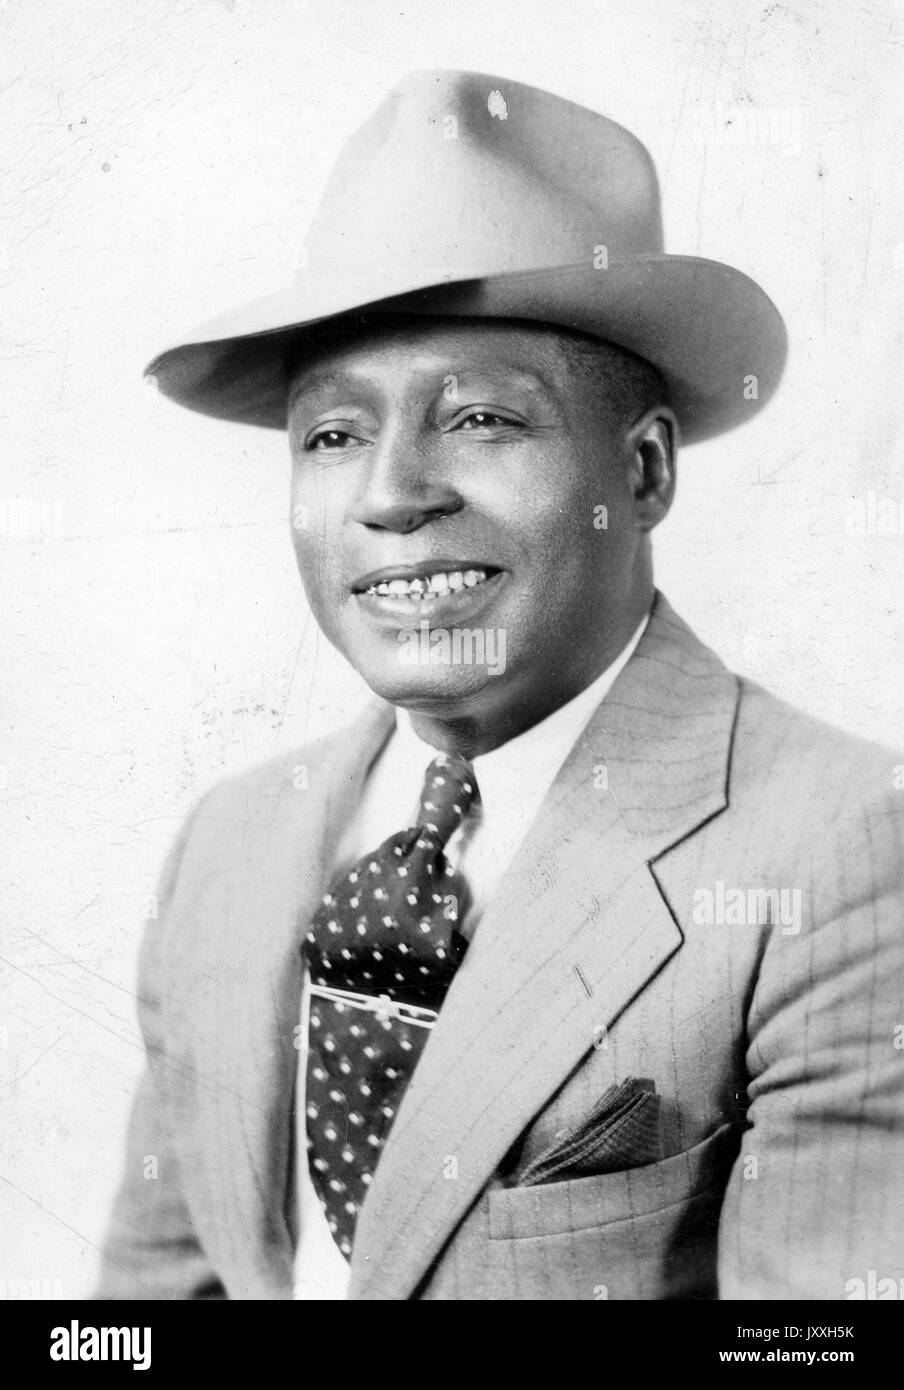 African Man Wearing Suit Hat Black and White Stock Photos   Images ... d340b98529d9